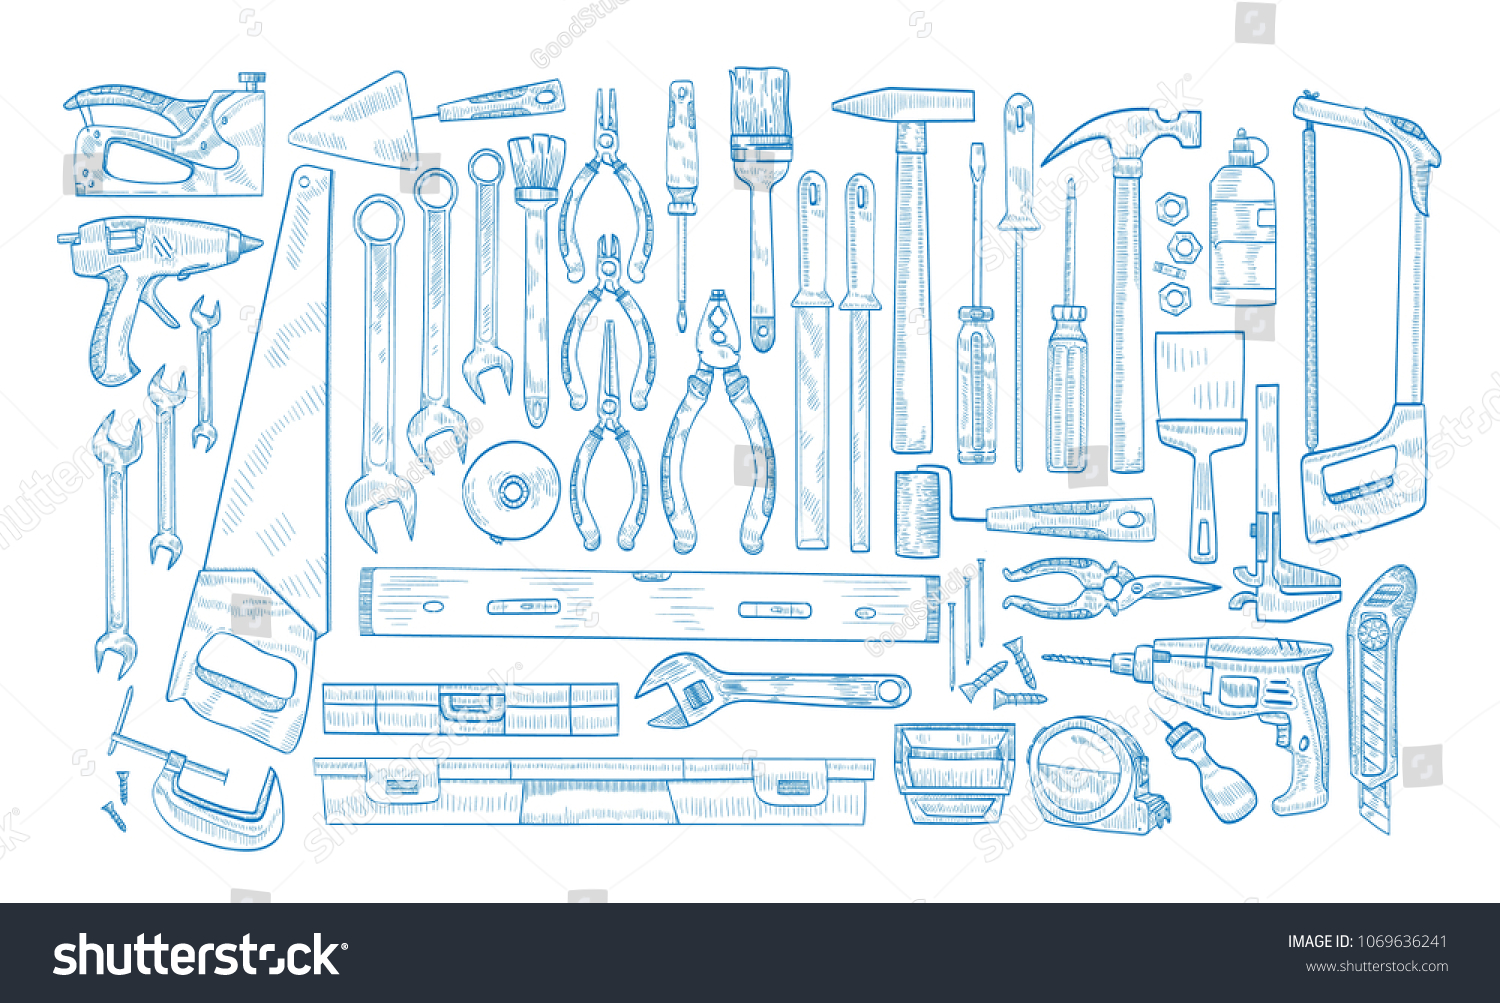 icom Array - collection manual powered electric tools woodworking stock  vector rh shutterstock com